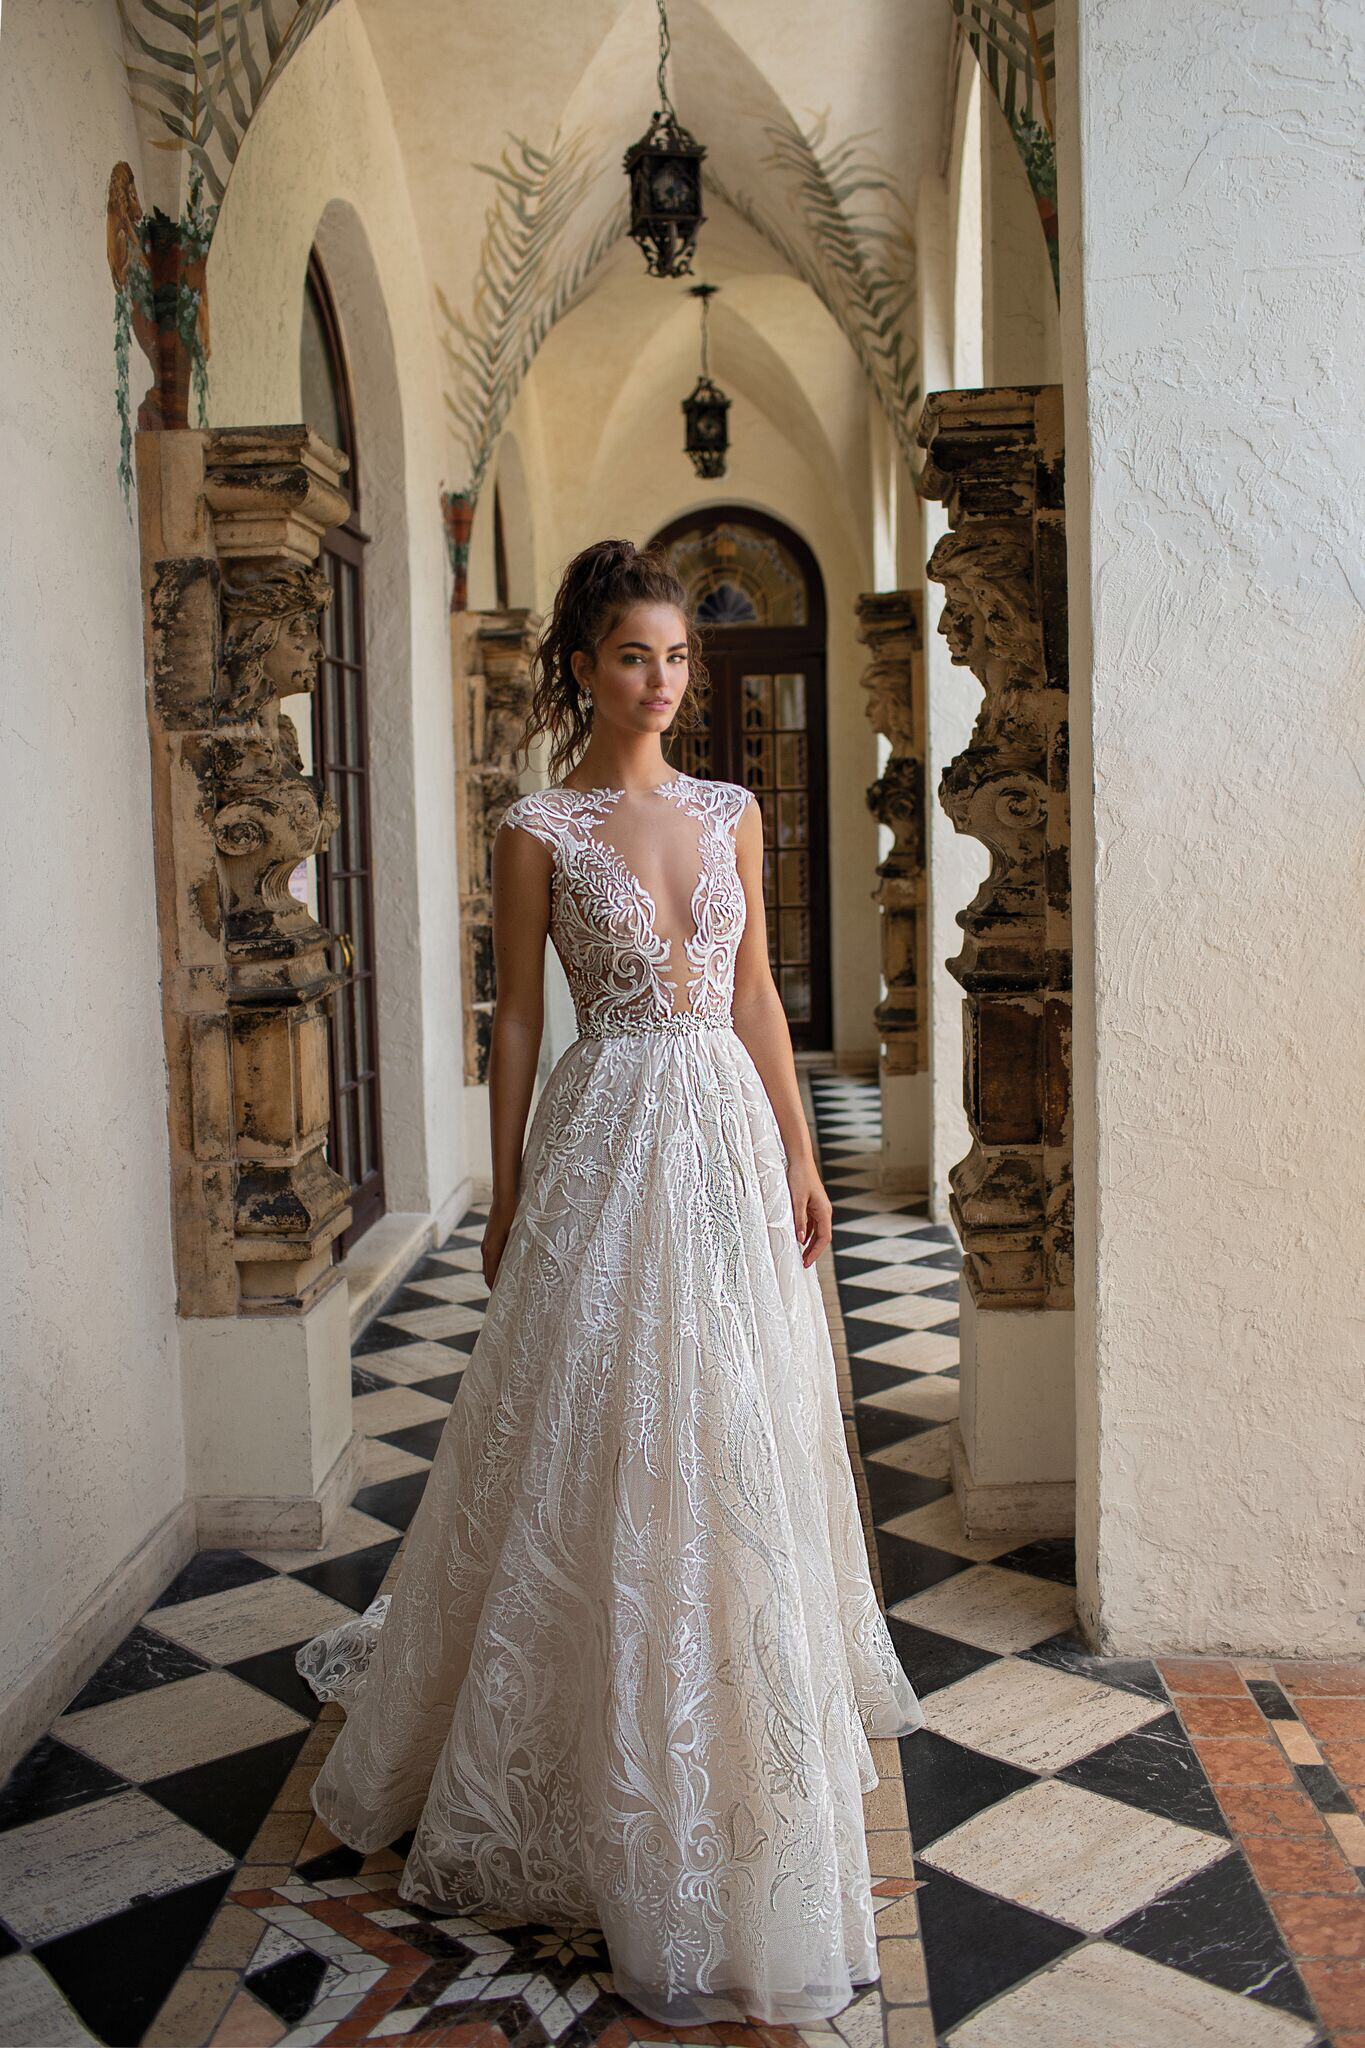 0a1a5125f357 Berta Miami Spring Summer 2019. Berta Miami Spring Summer 2019 Slit Wedding  Dress ...